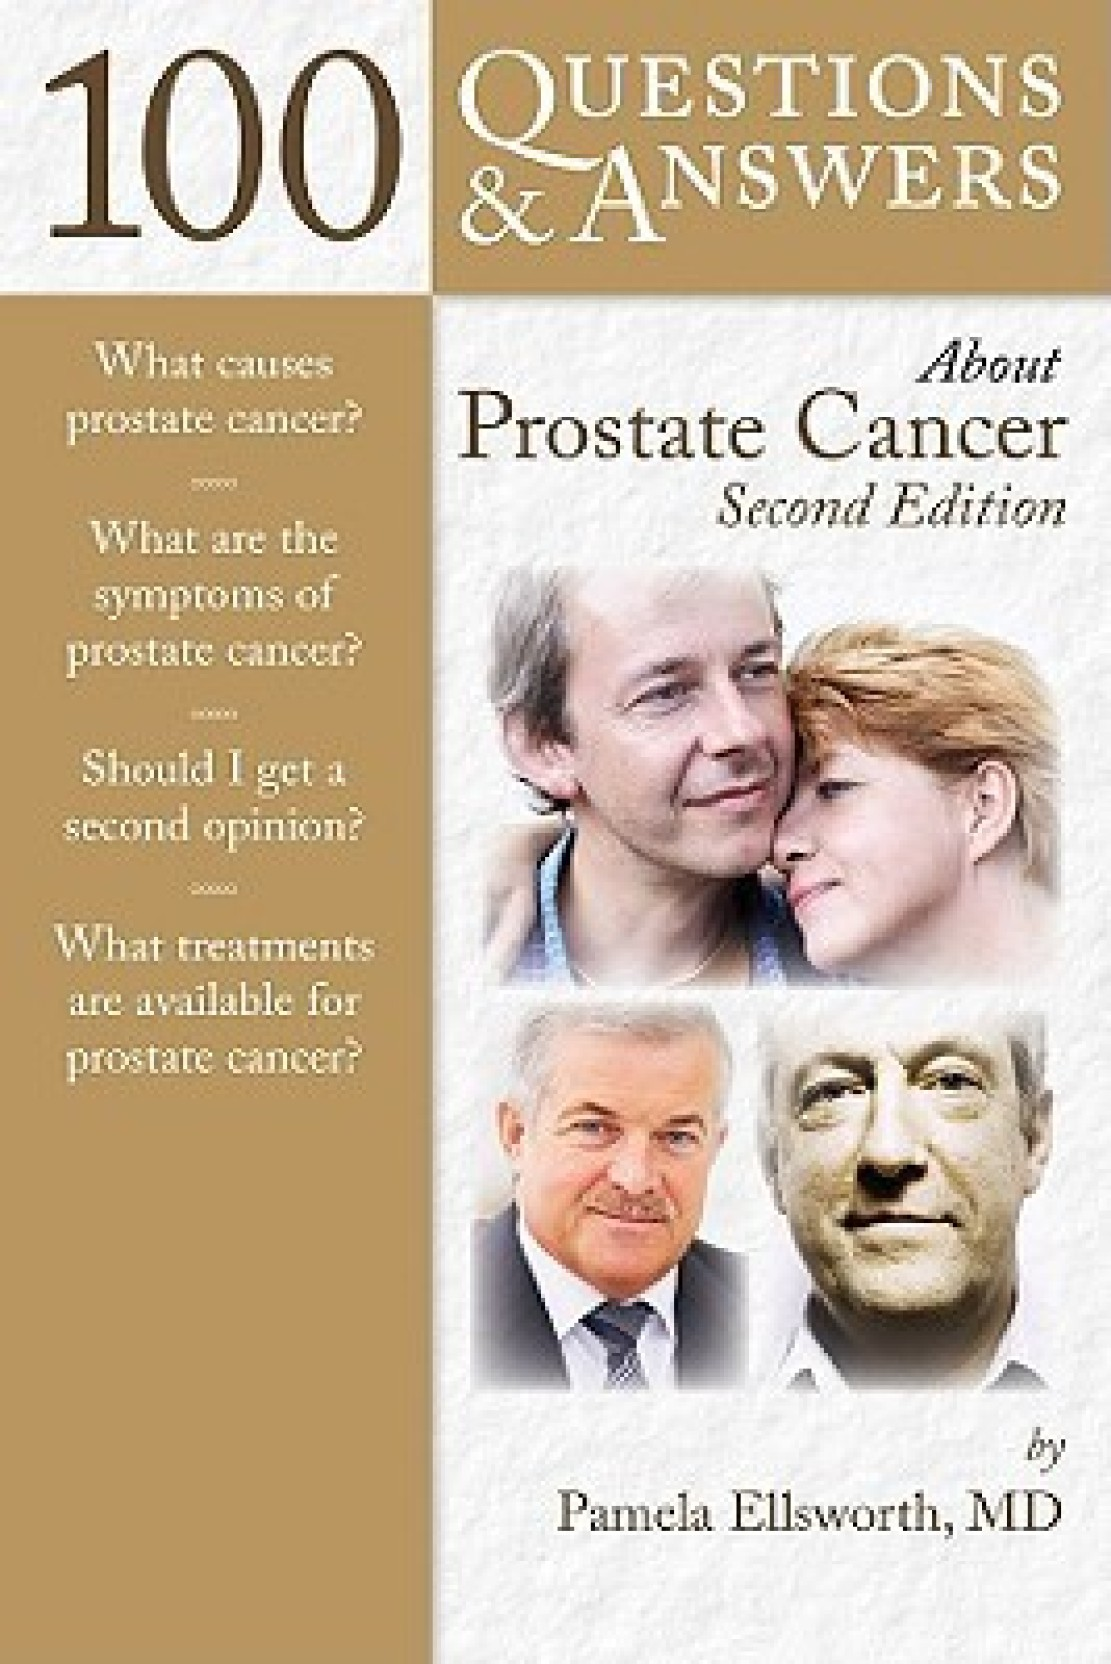 100 Questions & Answers About Prostate Cancer. ADD TO CART